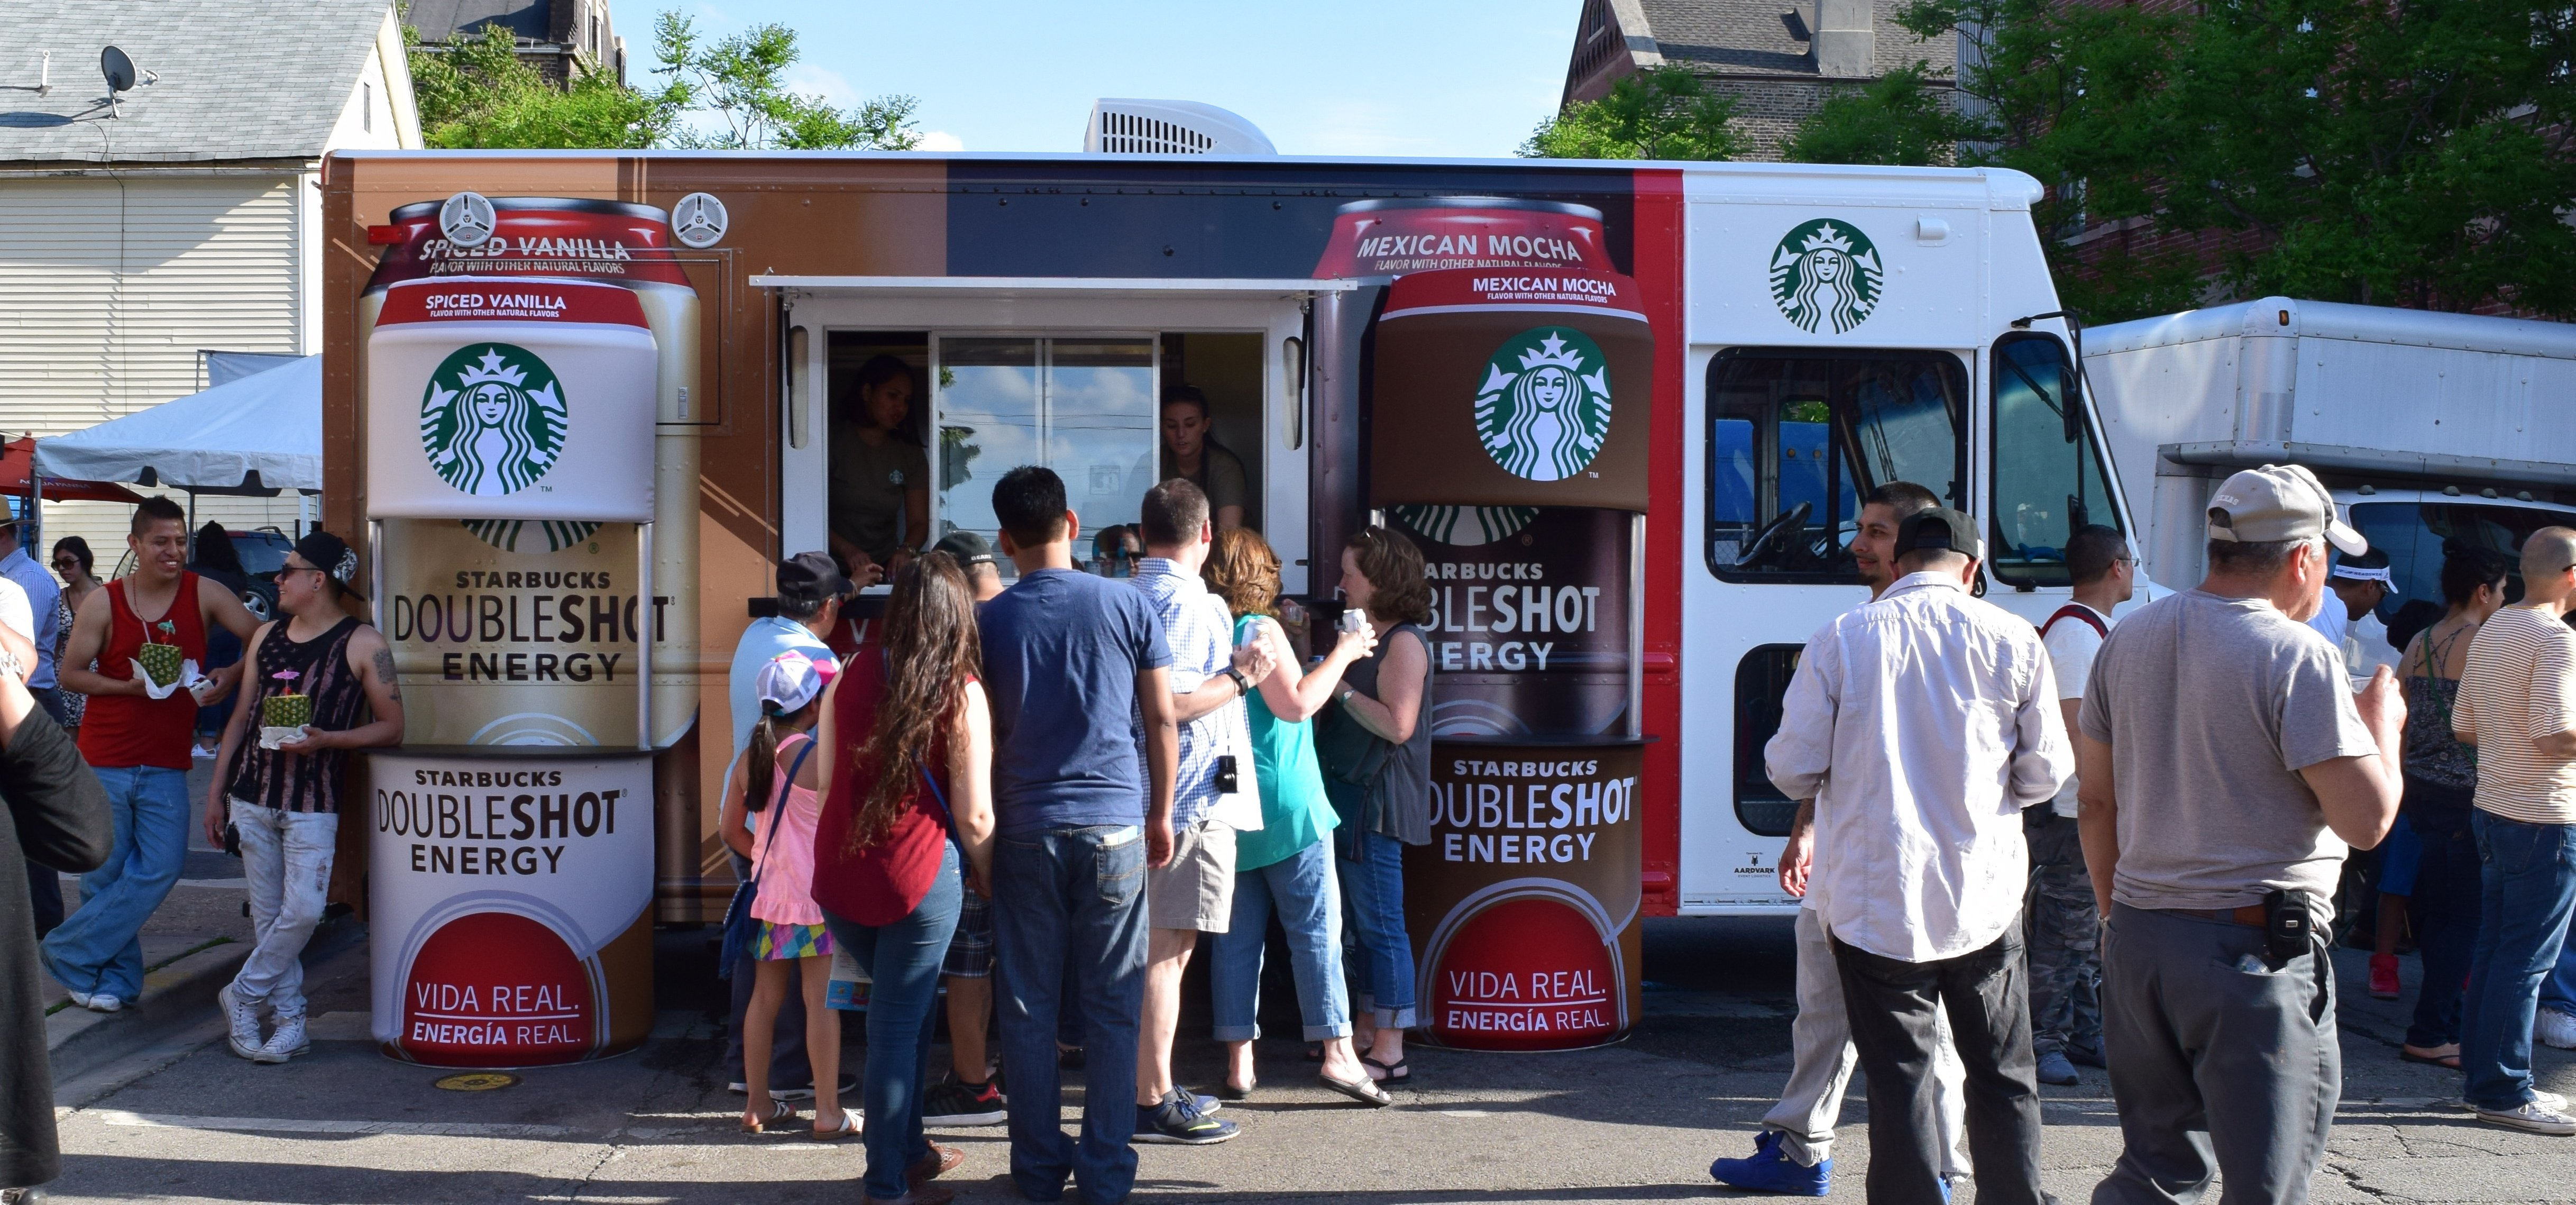 Starbucks Doubleshot Energy Mobile Tour.jpg